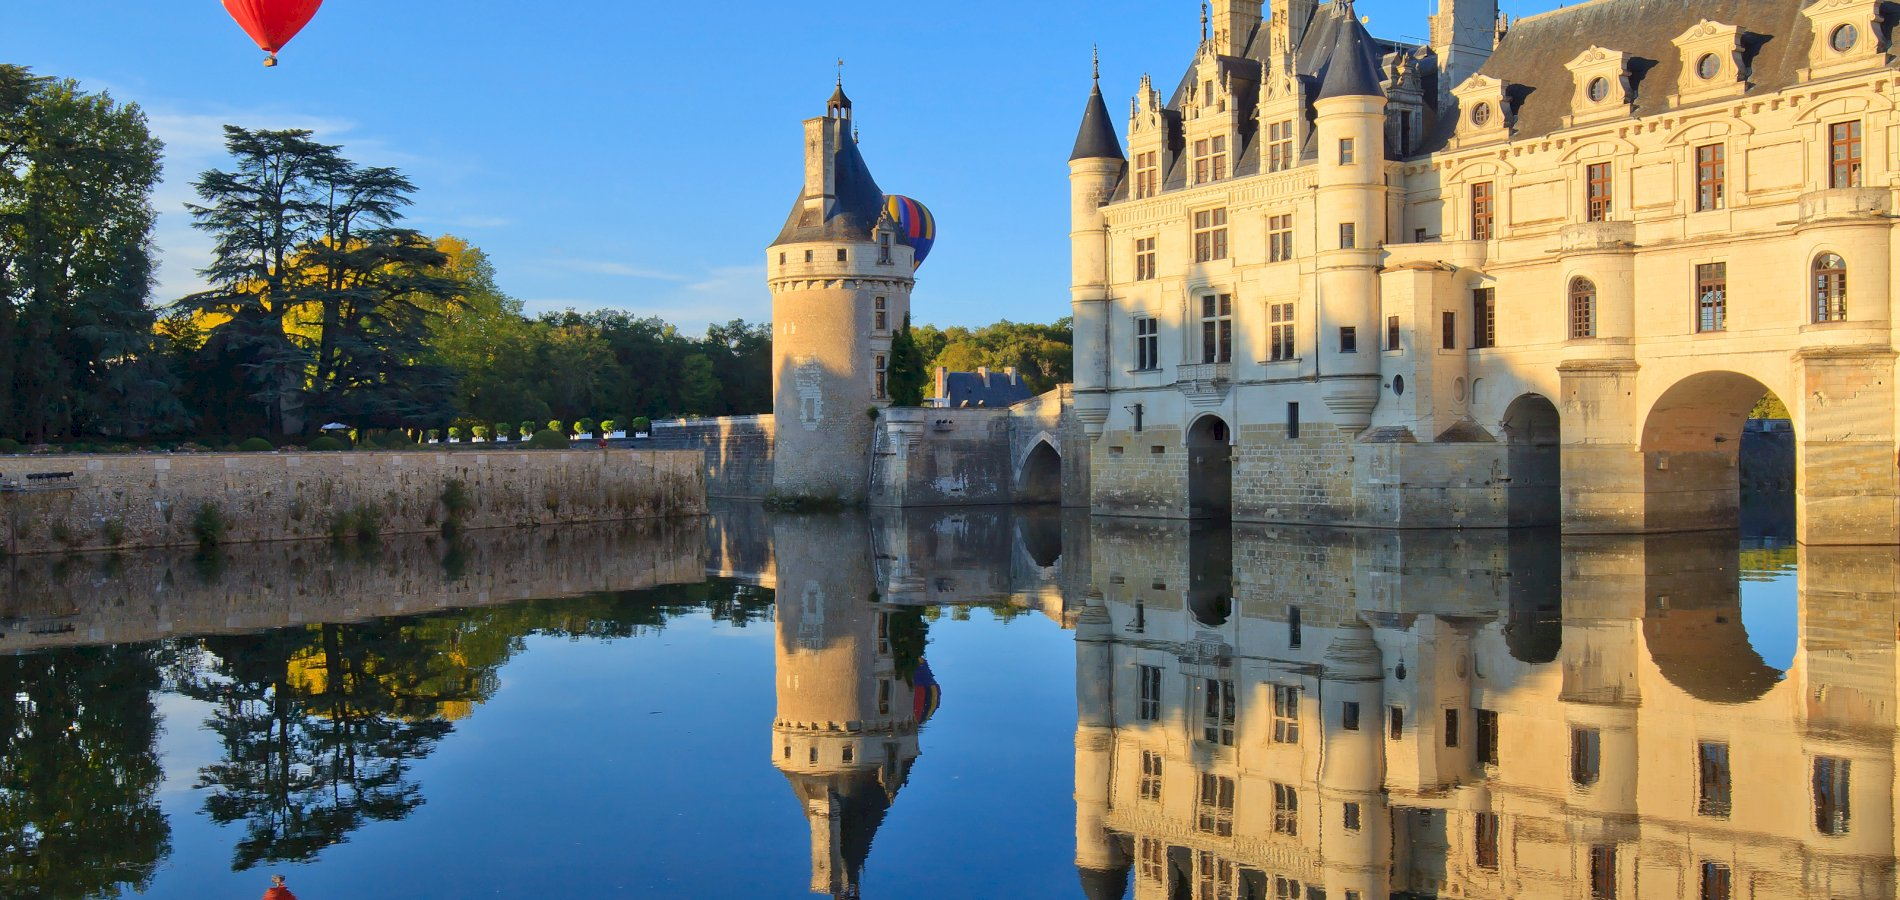 Ophorus Tours - Loire Valley Castles Day Trip from Paris to Amboise, Chenonceau and Chambord